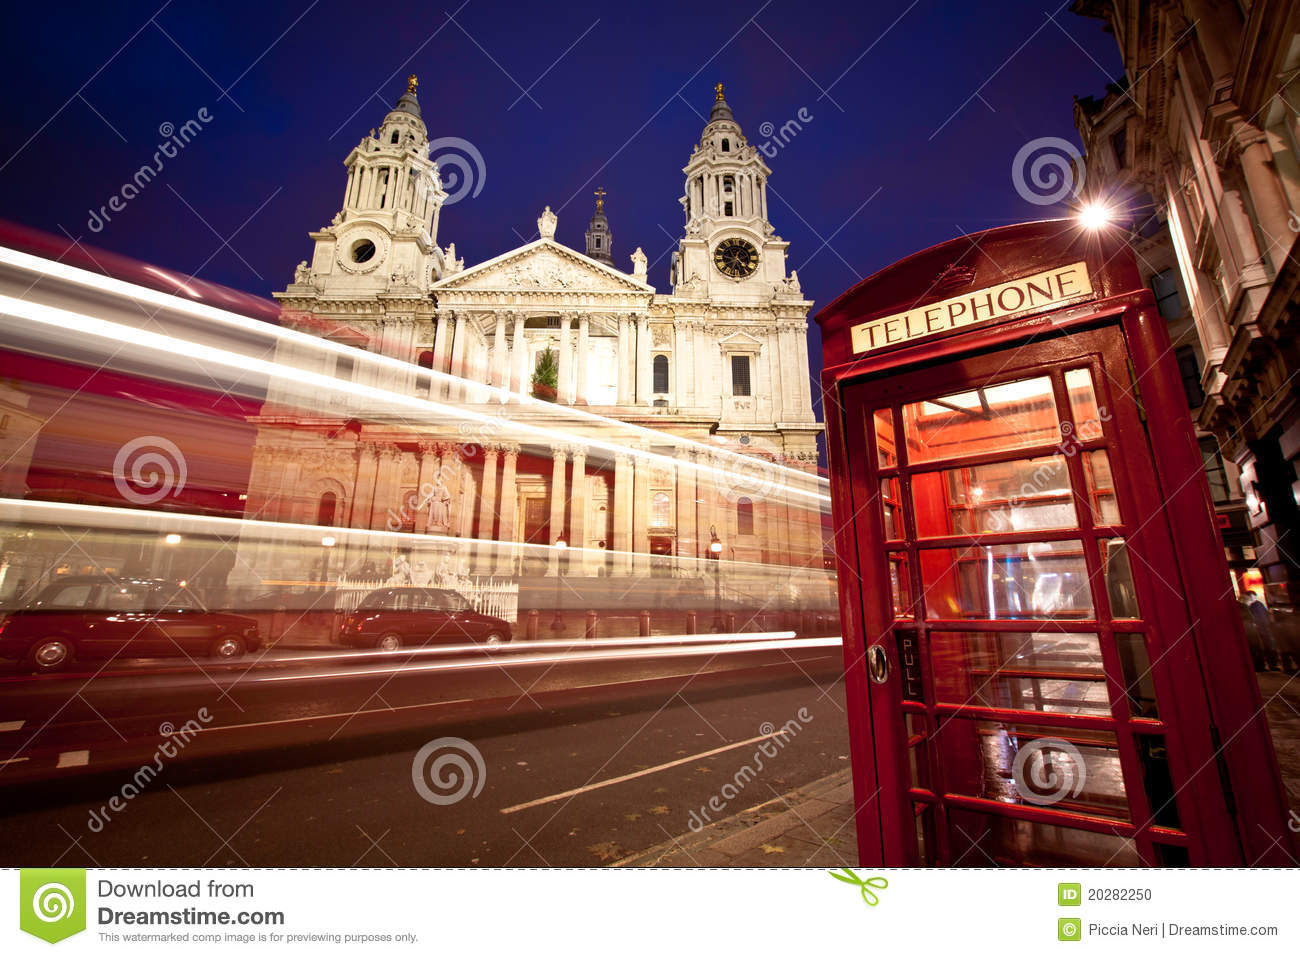 St Paul s cathedral facade, bus and phone box